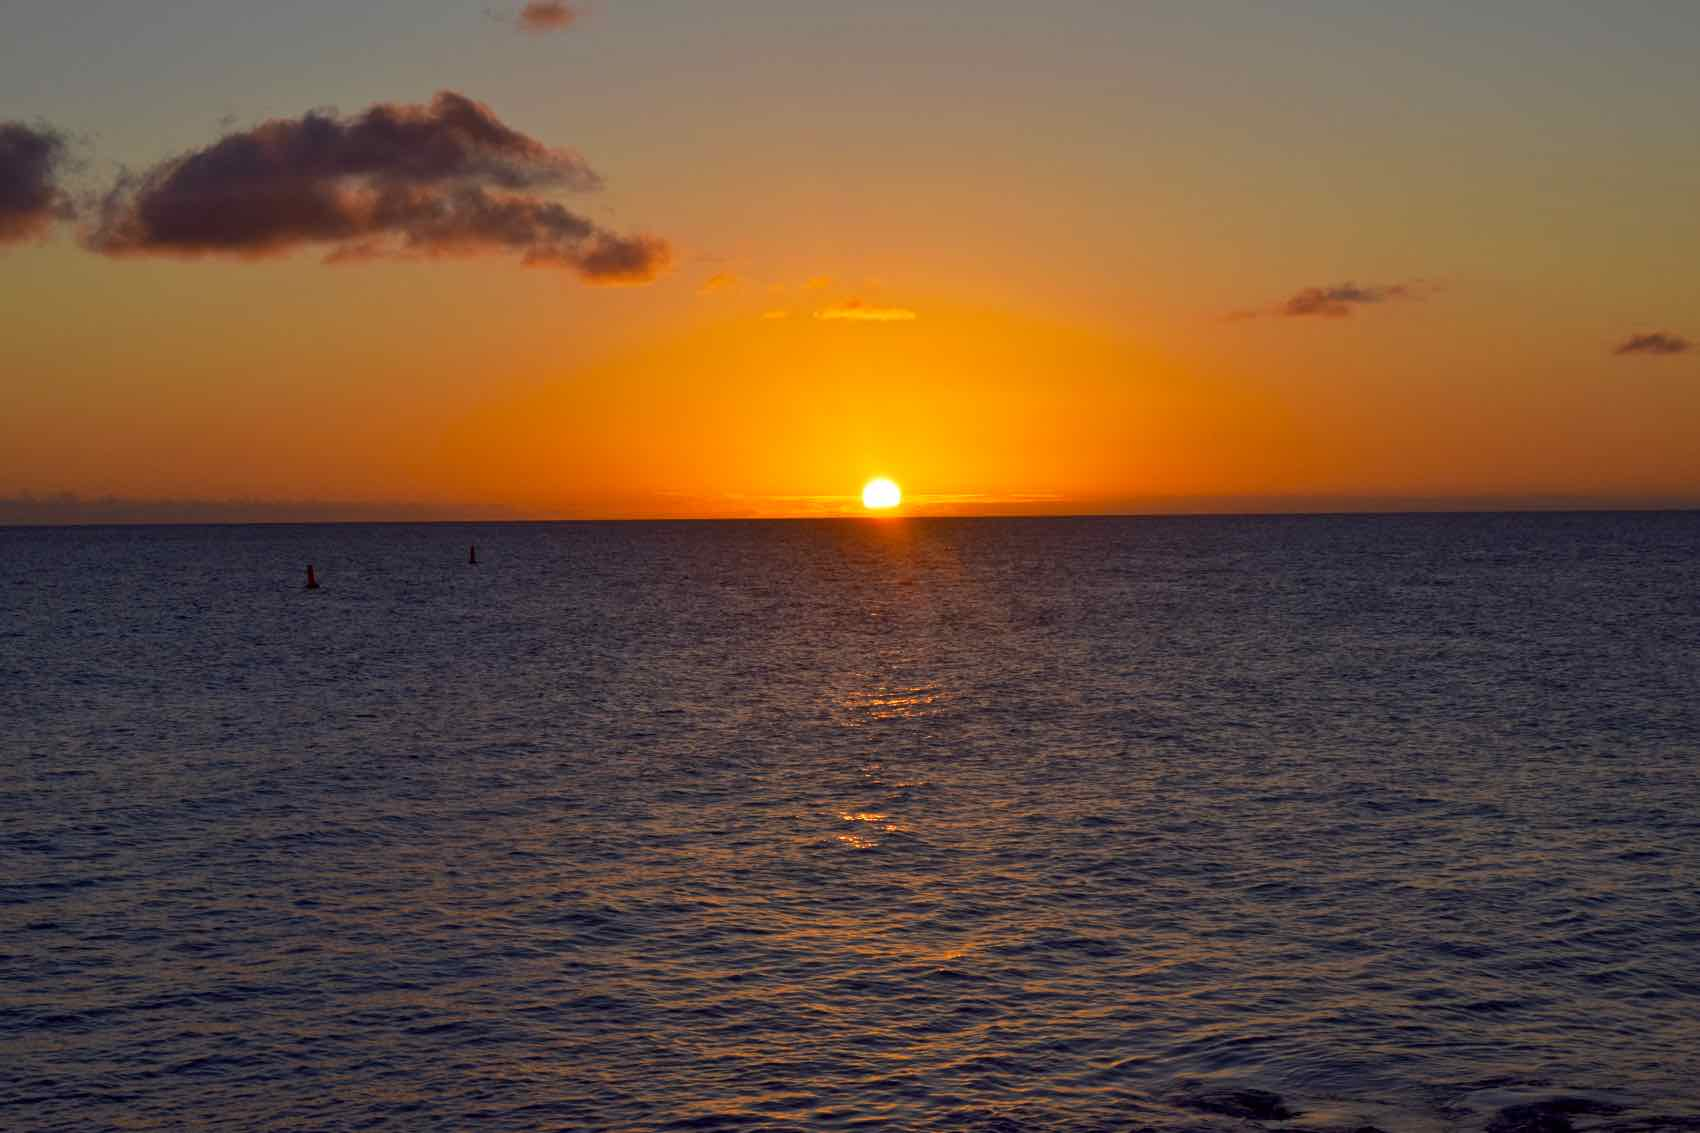 Sunset at Sunset Beach, Saint Martin